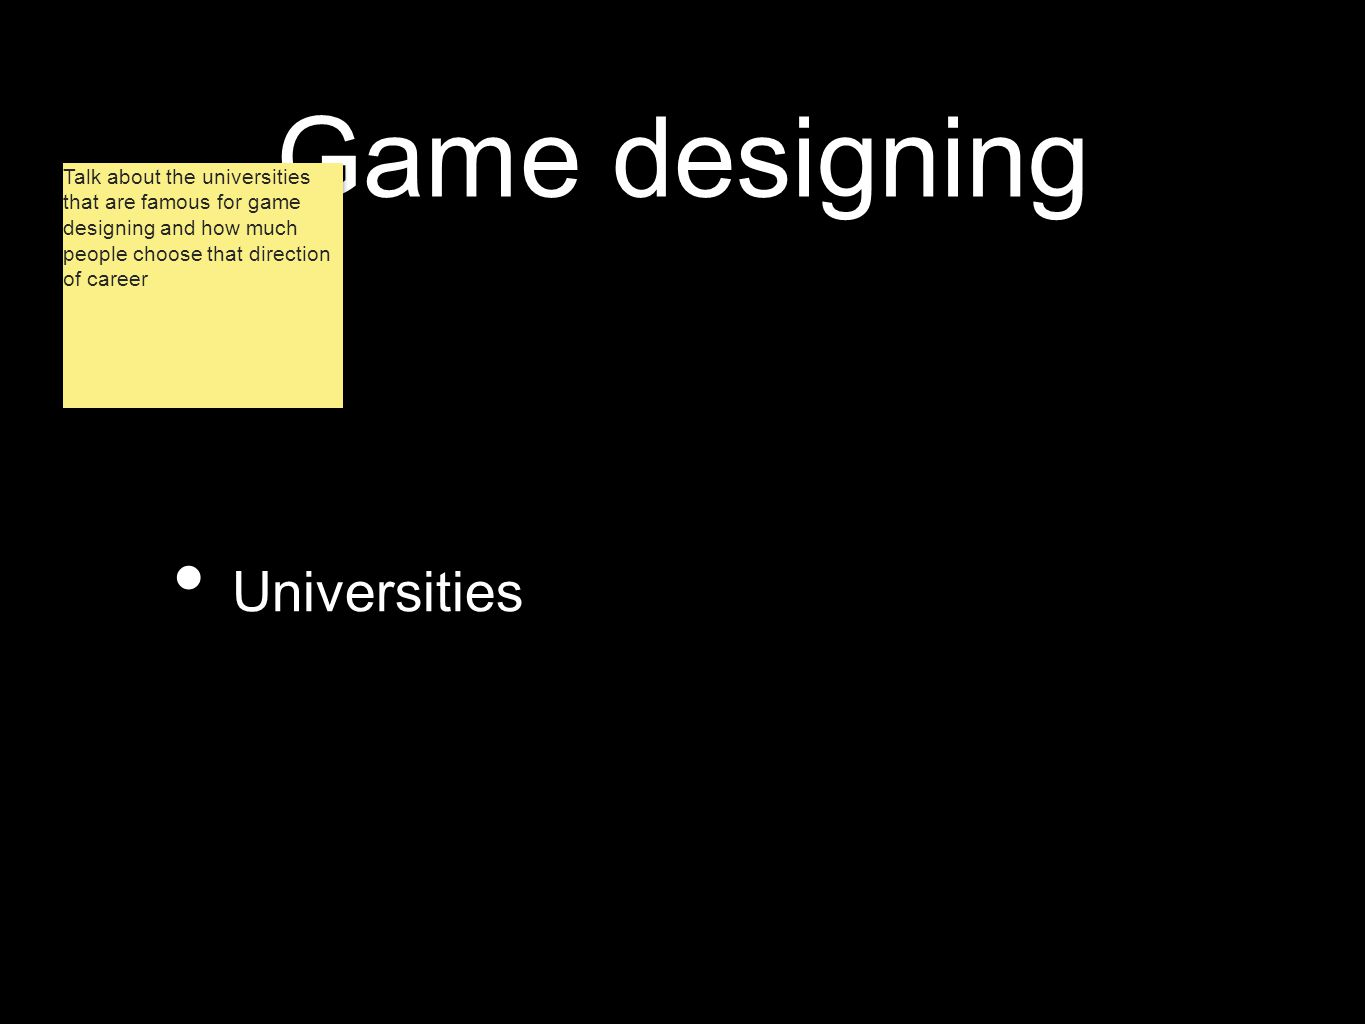 Game designing Universities Talk about the universities that are famous for game designing and how much people choose that direction of career